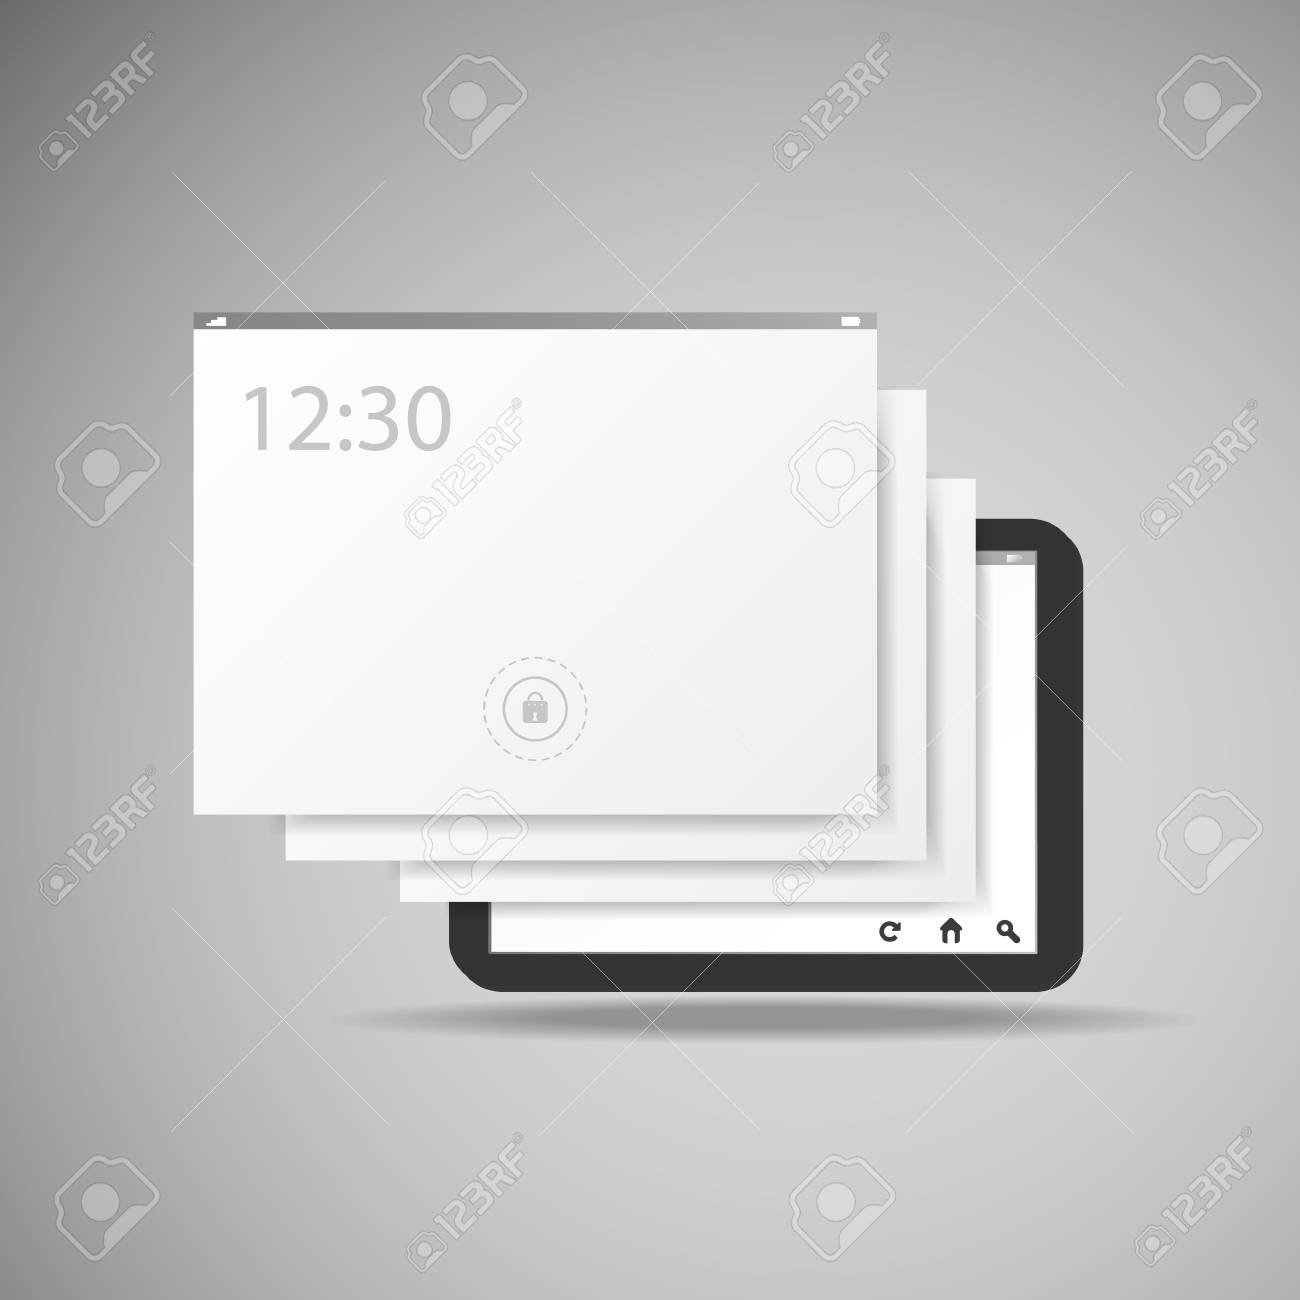 Tablet With Layers Stock Vector - 22256501